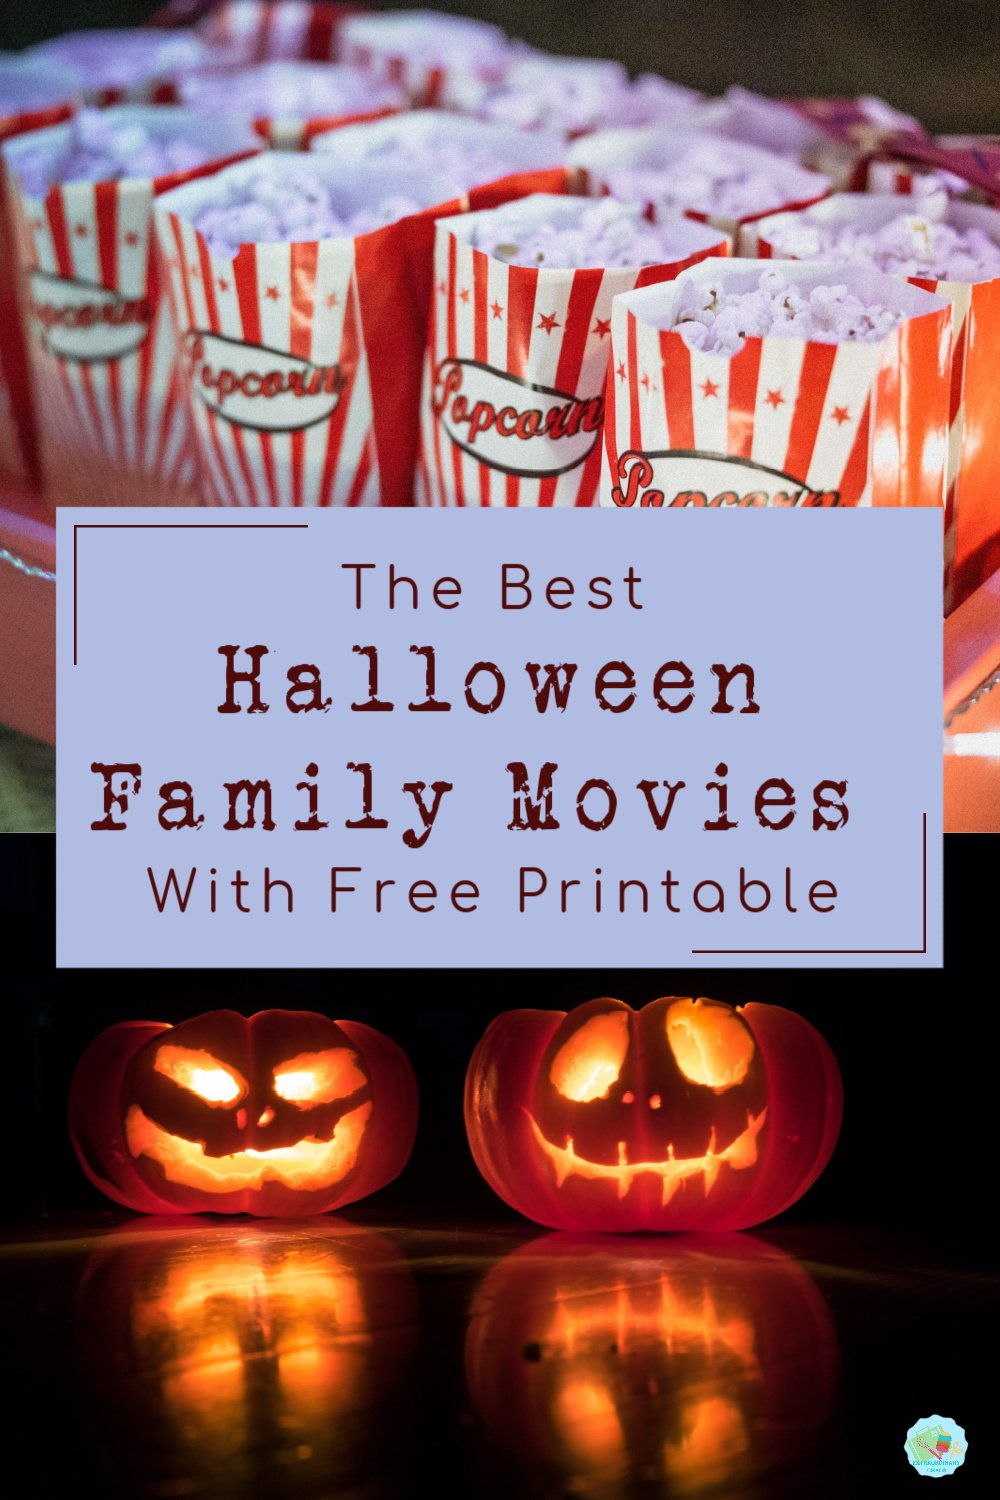 The best Halloween Movies for families with Free Printable to download and keep